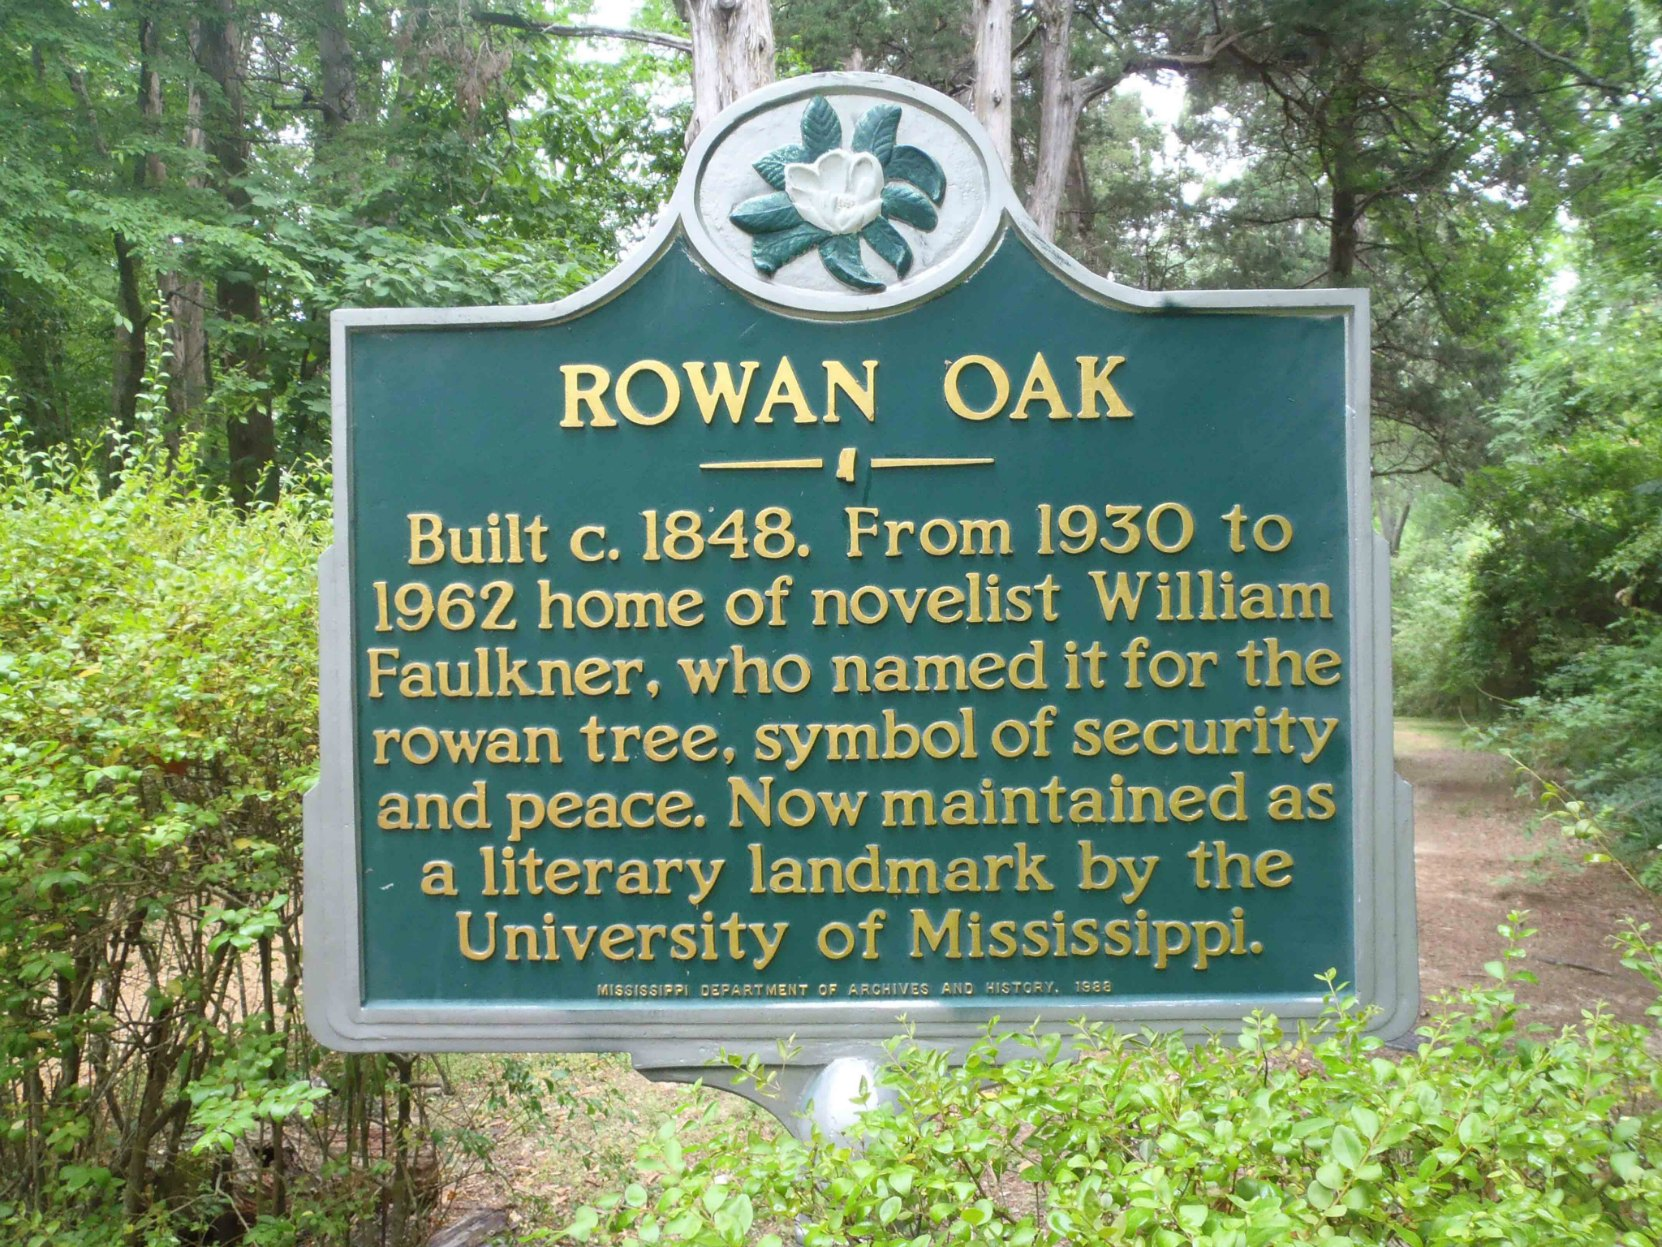 Mississippi Department of Archives & History marker at the entrance to Rowan Oak, William Faulkner's home from 1930 until his death in 1962.